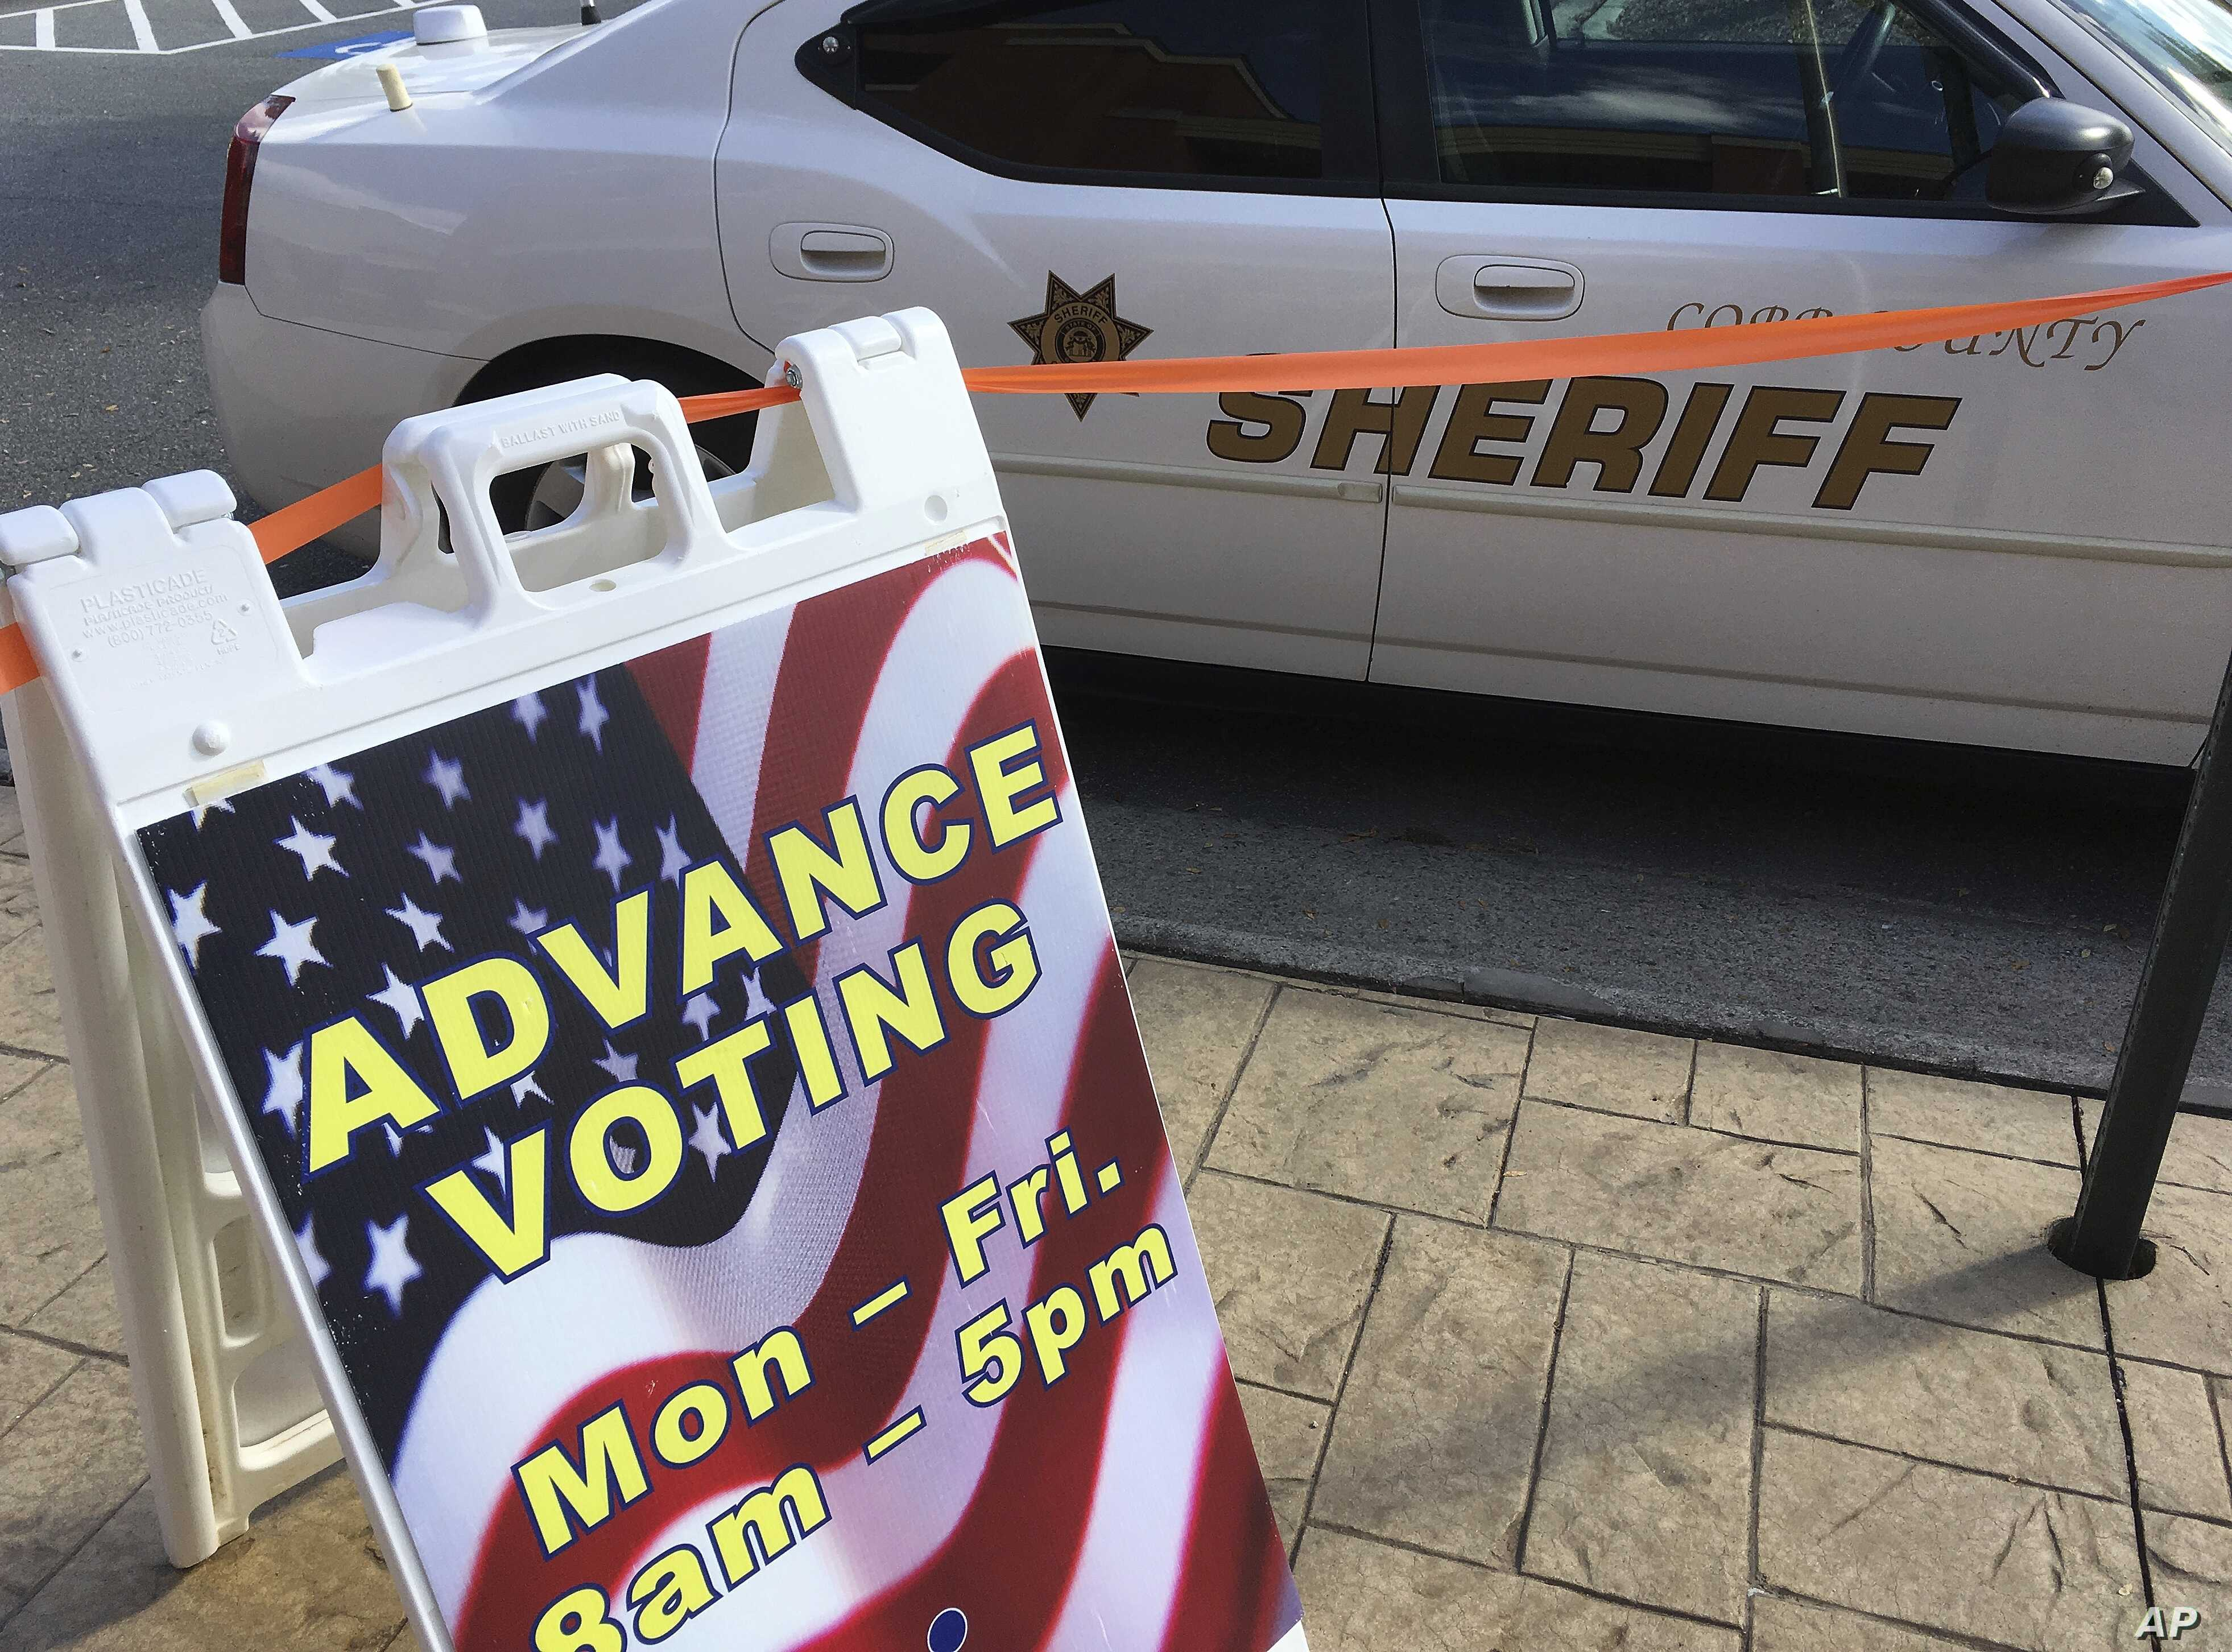 """A sign displays absentee voting hours in Marietta, Ga., as a Cobb County sheriff's deputy sits in his vehicle, Oct. 17, 2016. Facing unprecedented warnings of a """"rigged"""" election from Donald Trump, state officials around the country are rushing to re..."""